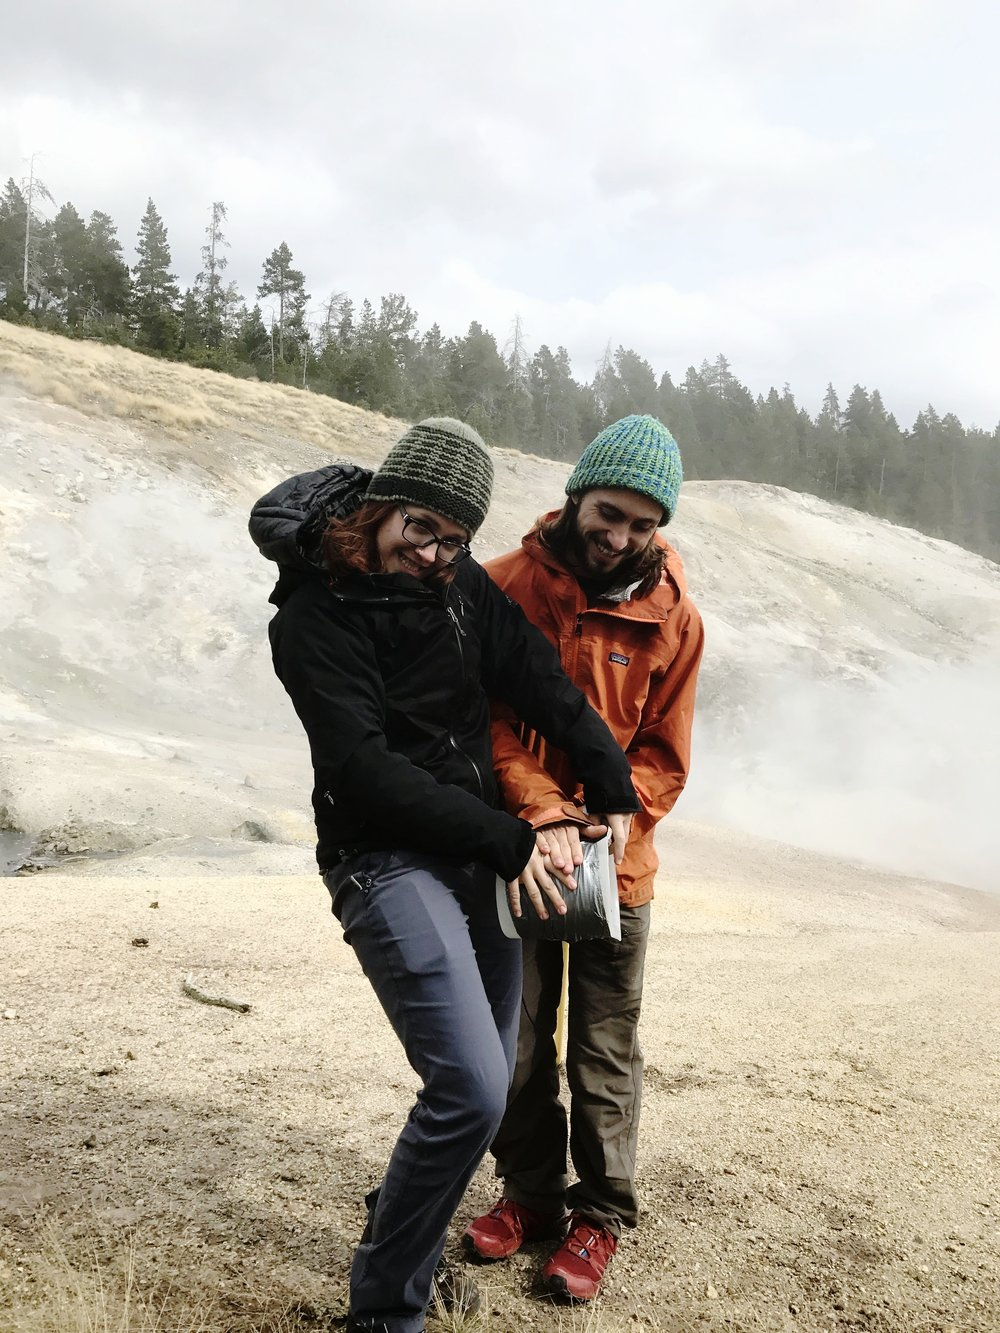 Shawna and George in good spirits and prepping some gear. (Research conducted under Yellowstone research permit YELL-2017-SCI-5068)